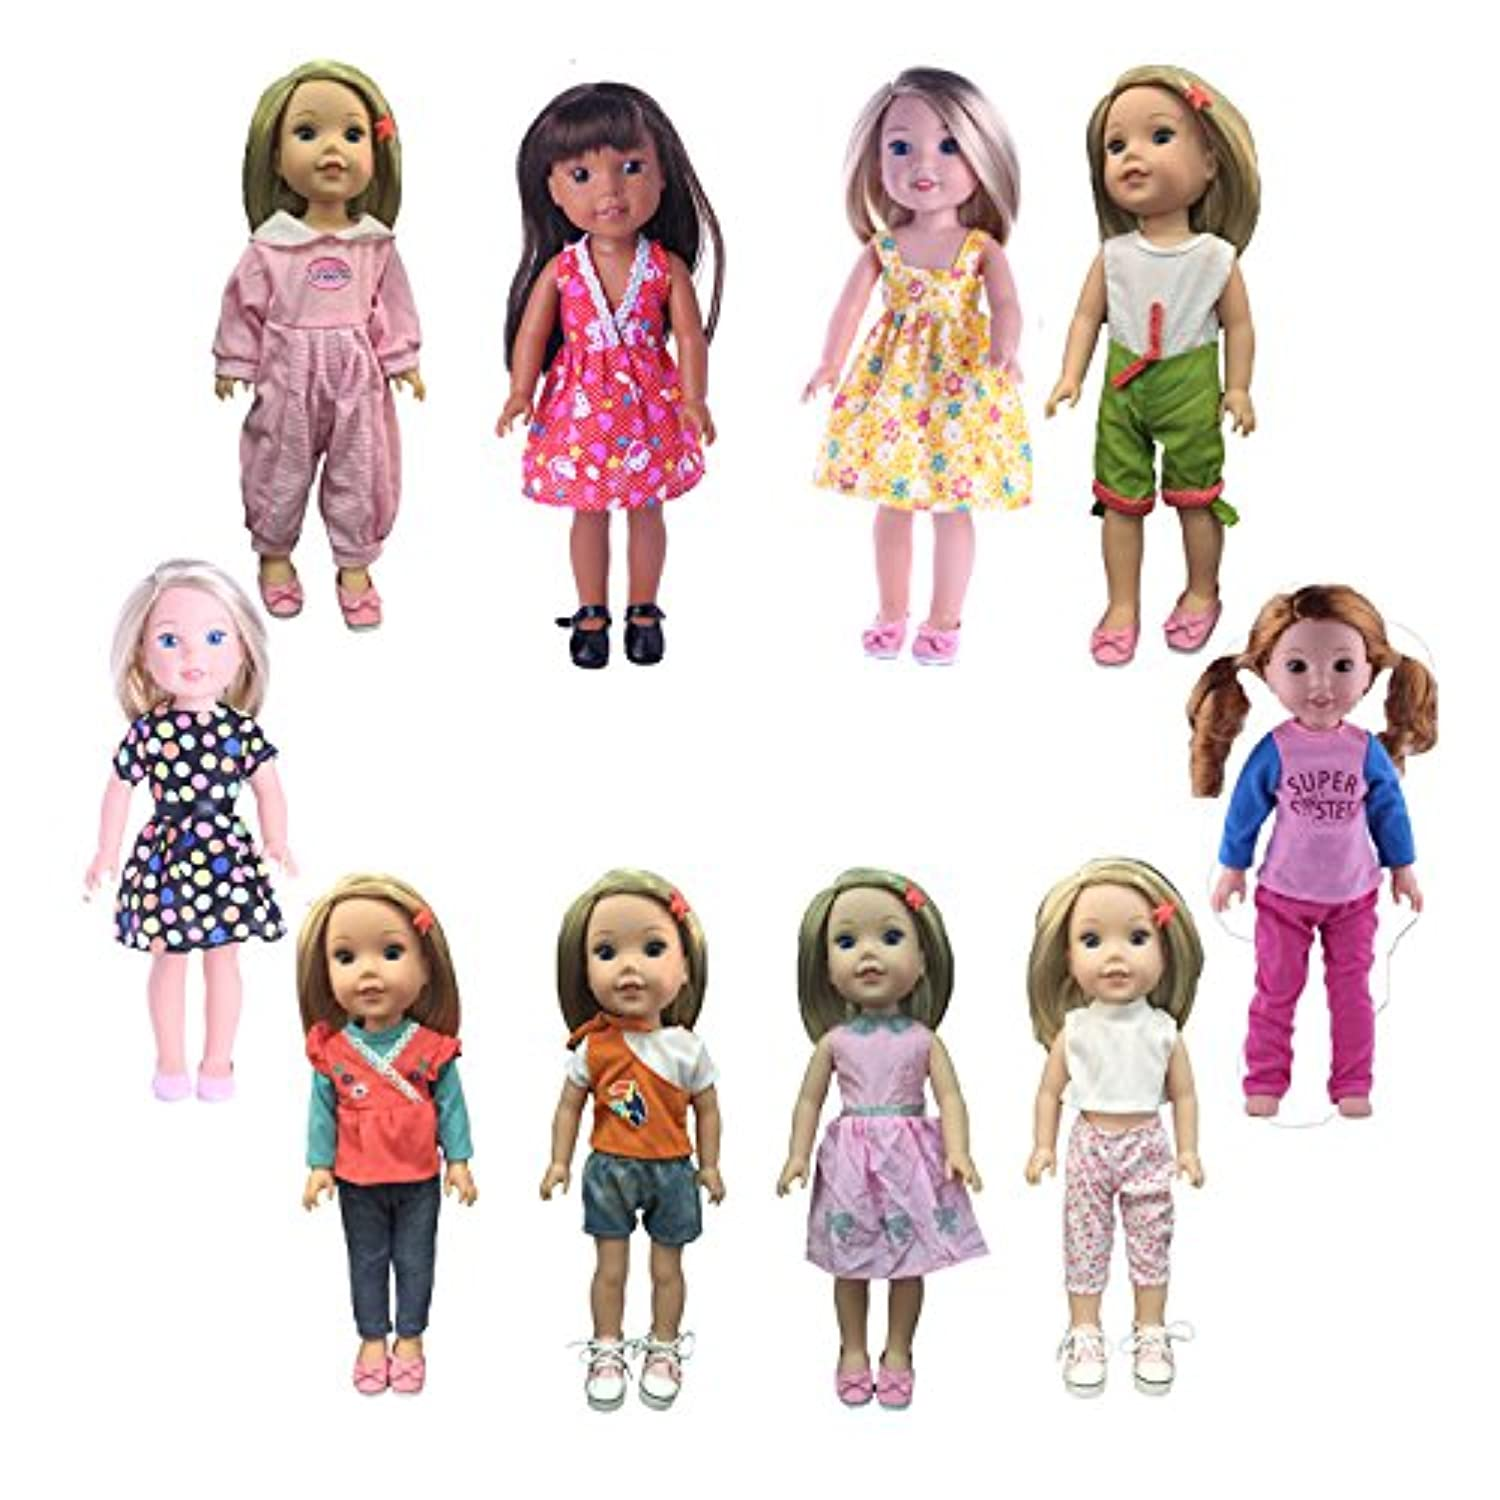 Luckdoll 5pcs Clothes Fits 14 inch American Girl Doll such as Wellie Wisher